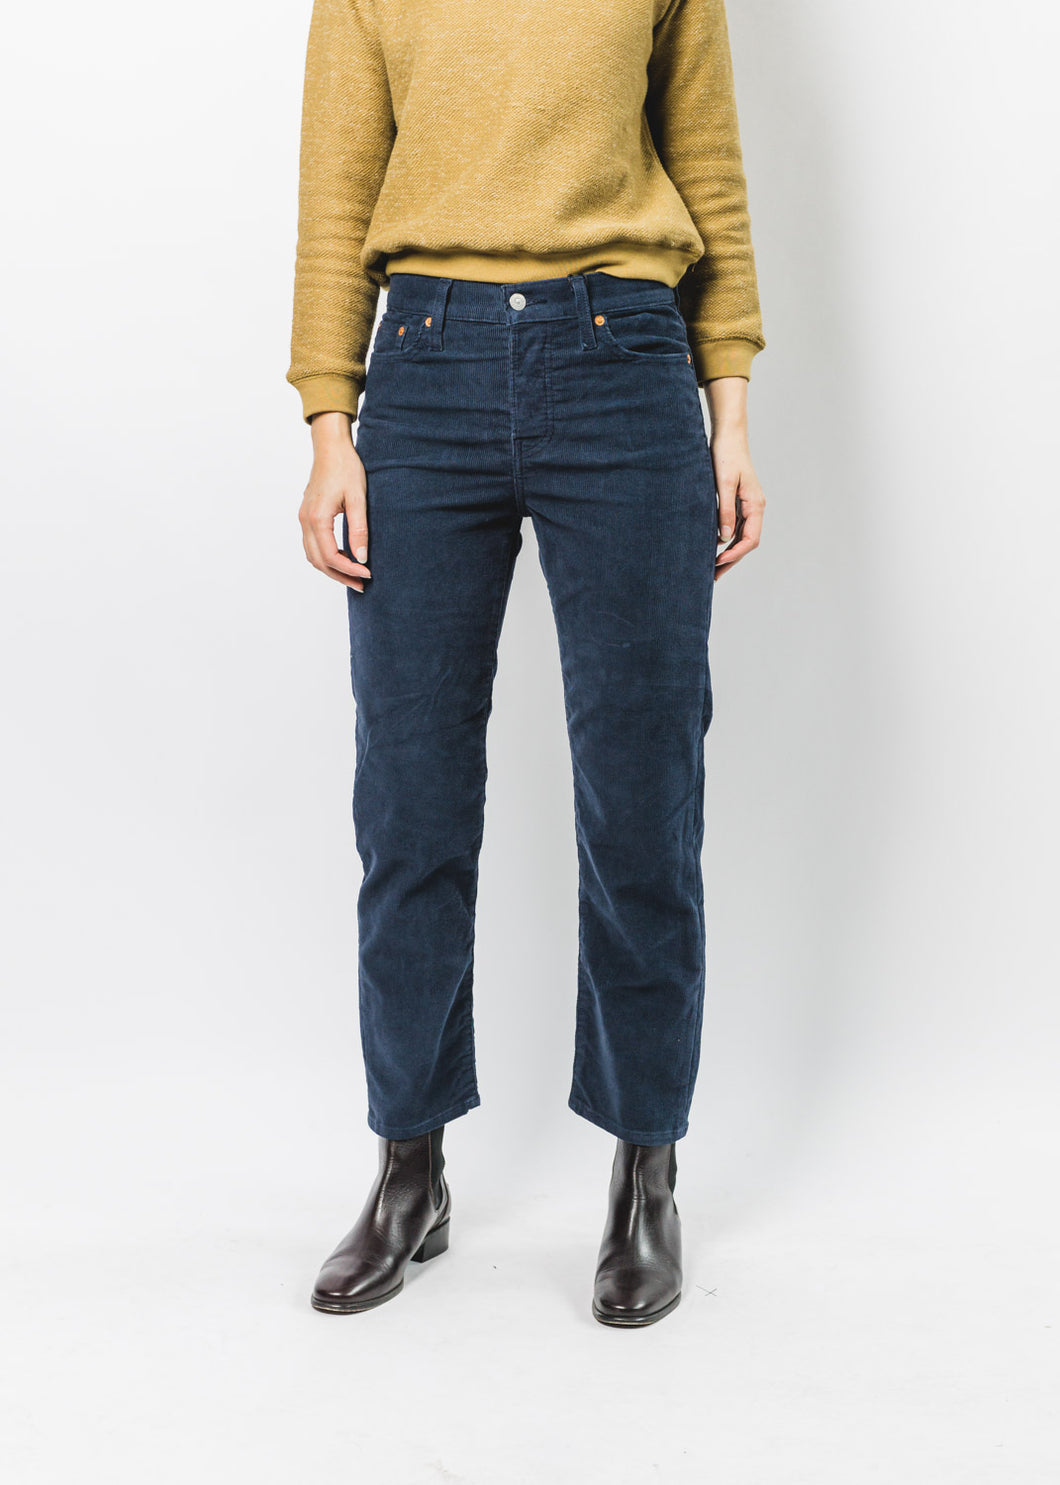 LEVIS WOMENS WEDGIE STRAIGHT NAVY CORDS